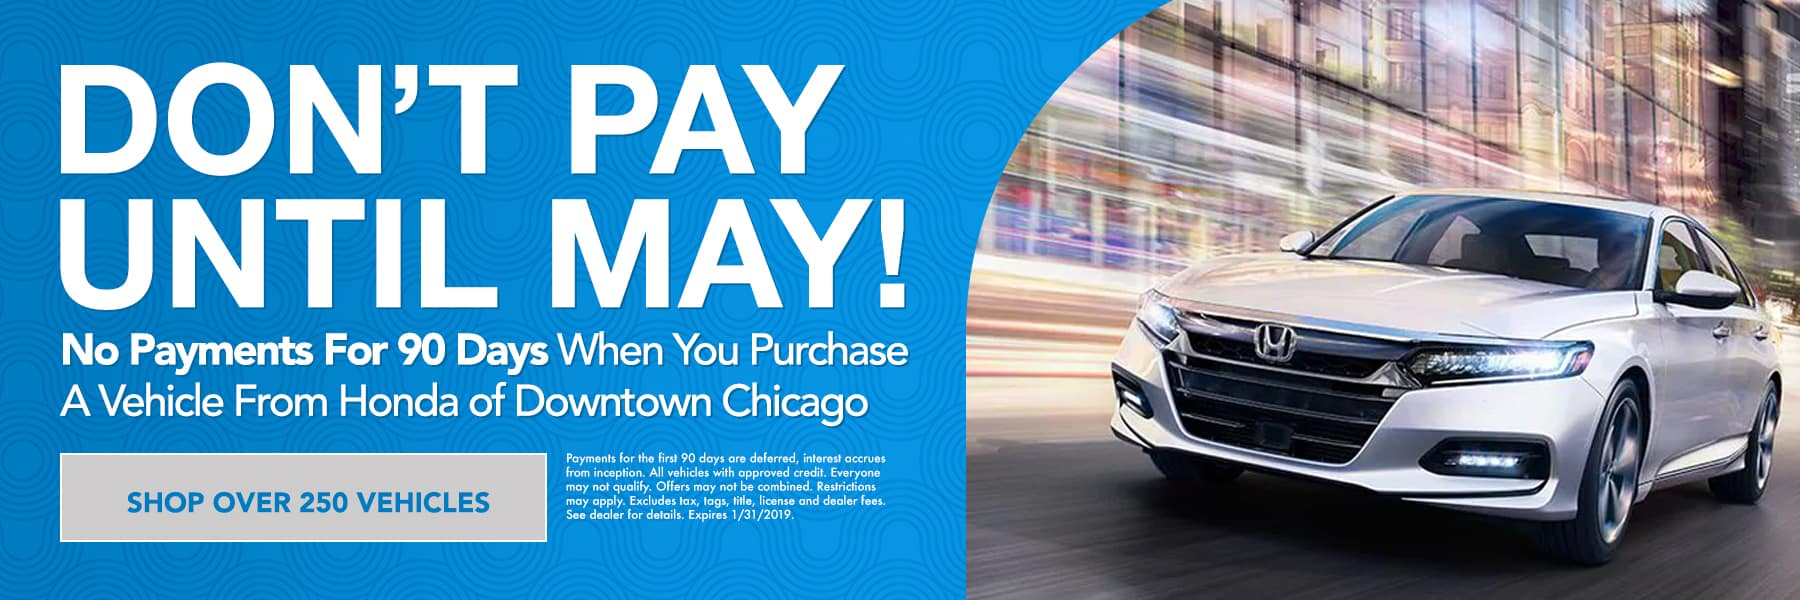 Don't pay until May - No payments for 90 days when you purchase a vehicle at Honda of Downtown Chicago - Shop over 250 vehicles